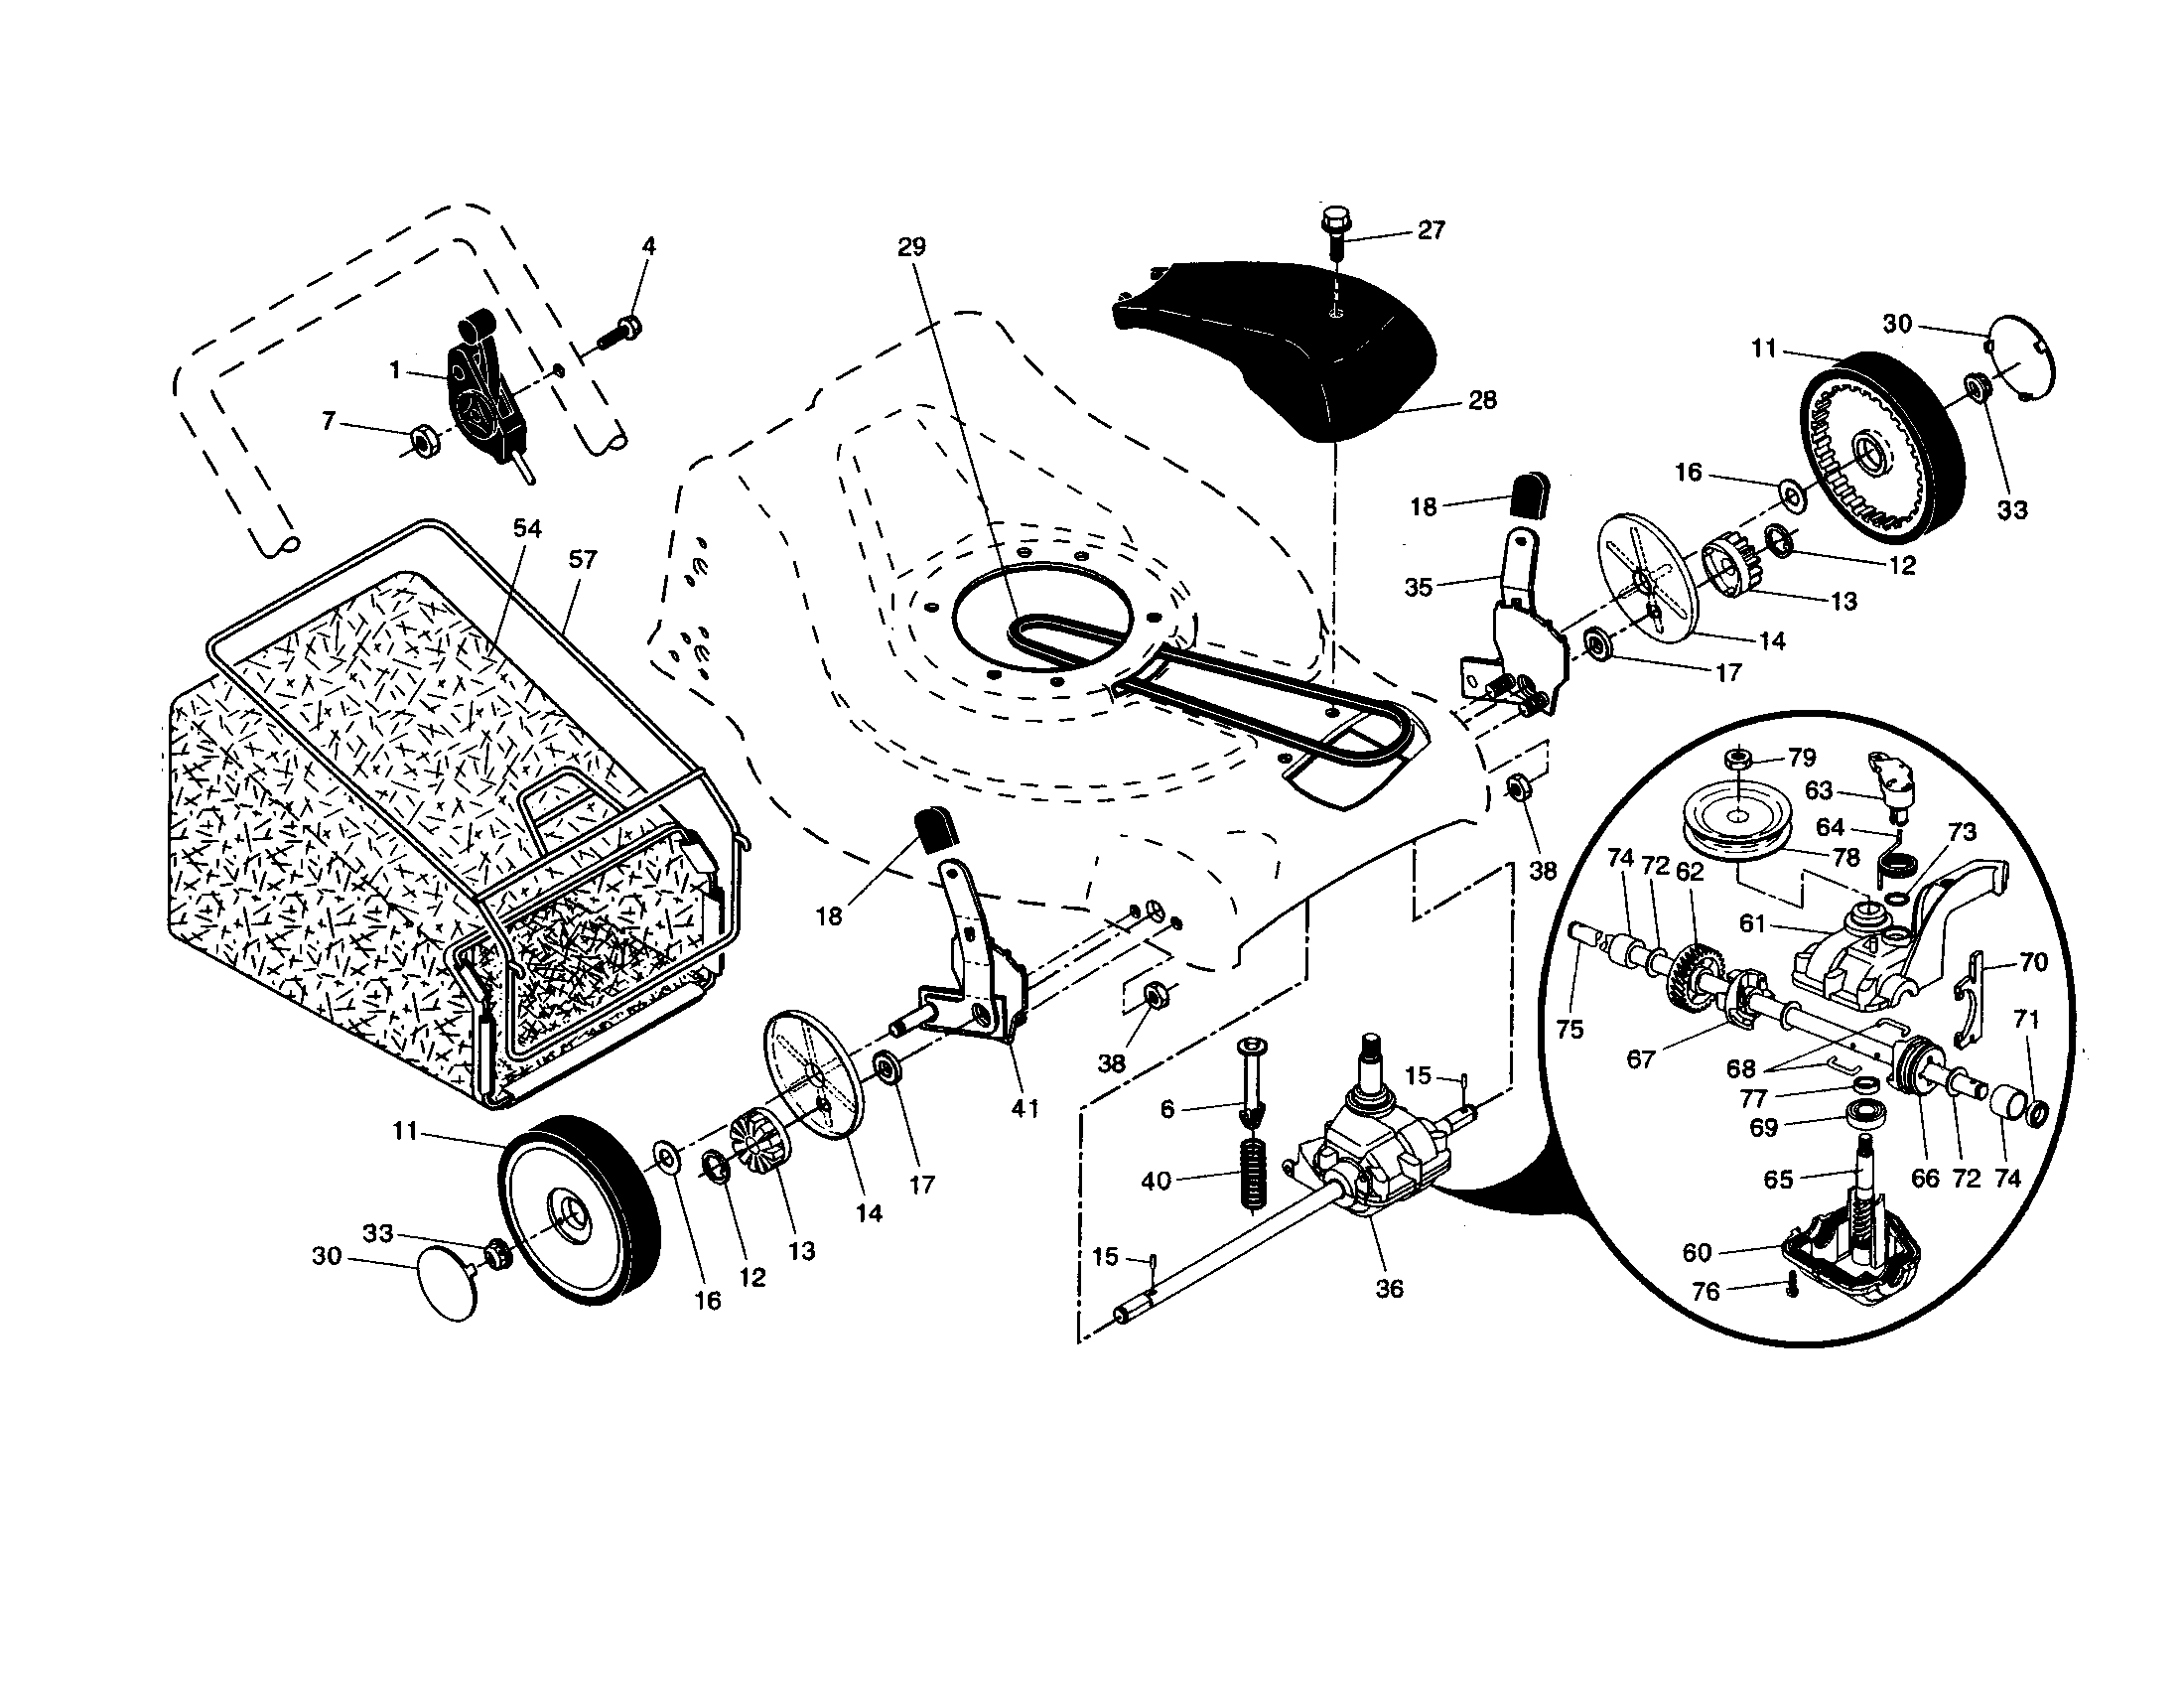 DRIVE CONTROL/GEAR CASE/WHEELS Diagram & Parts List for